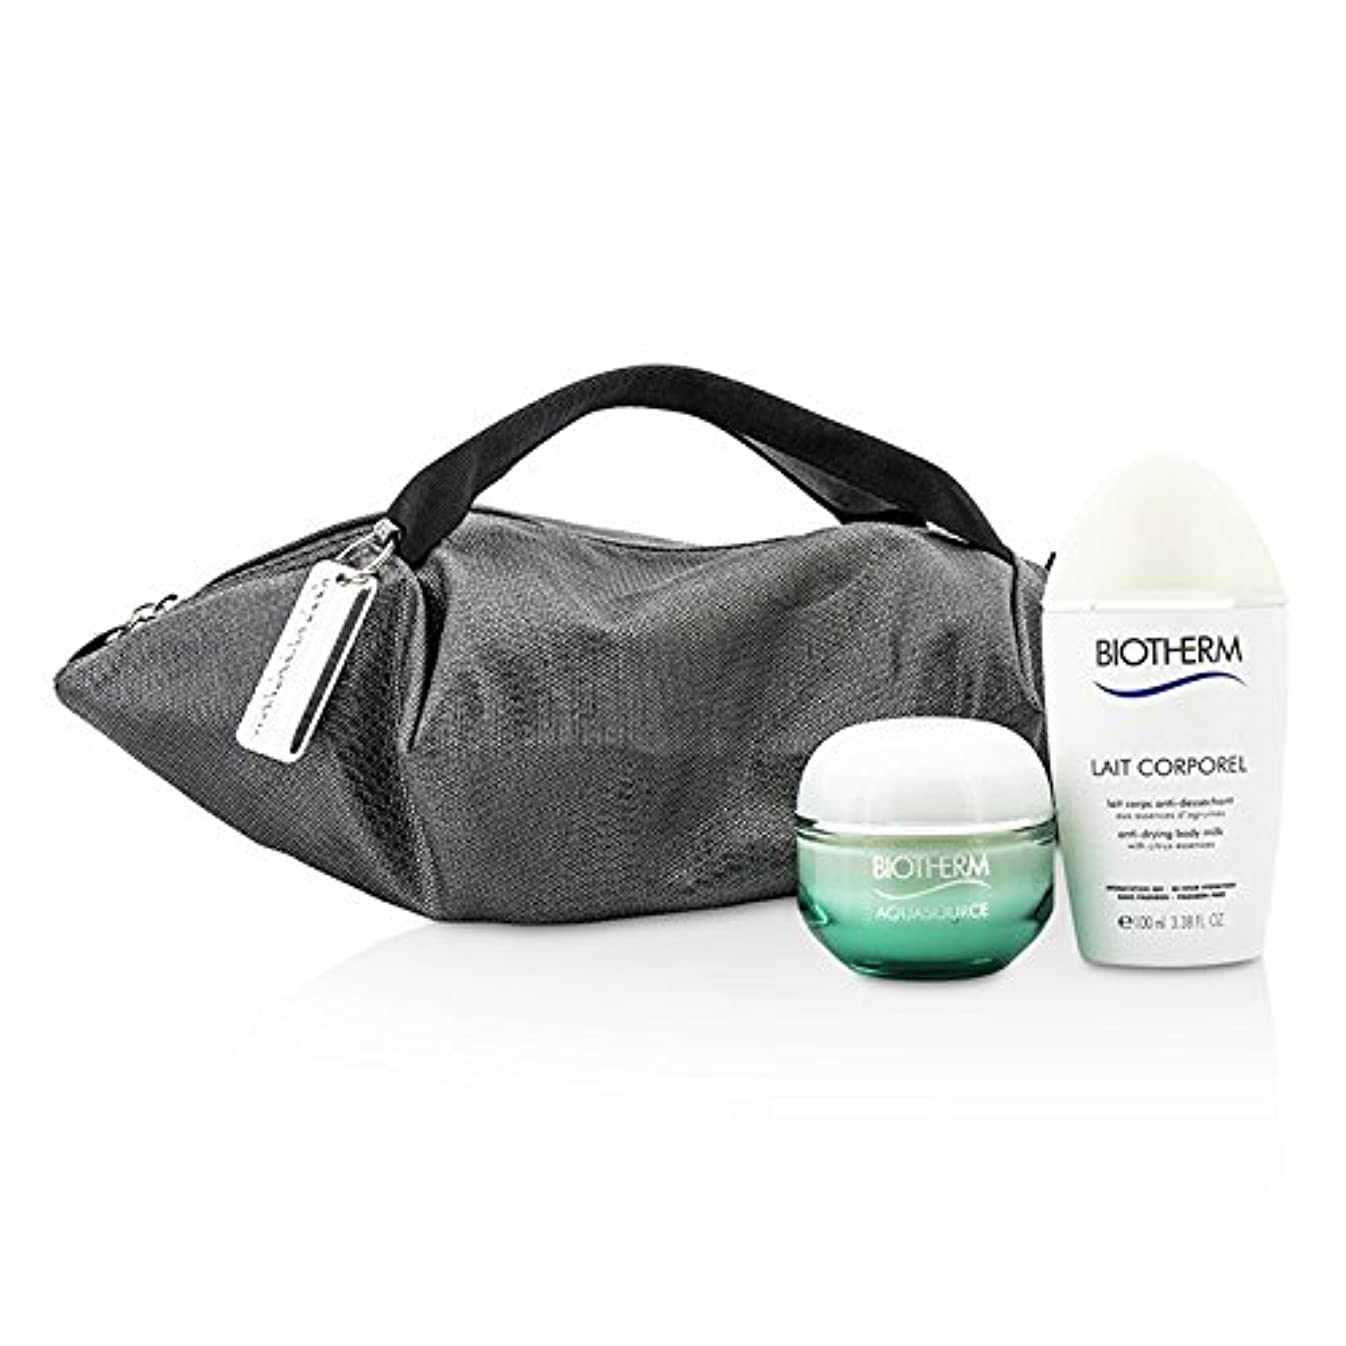 ペデスタル老朽化した埋めるビオテルム Aquasource & Body Care X Mandarina Duck Coffret: Cream N/C 50ml + Anti-Drying Body Care 100ml + Handle Bag...